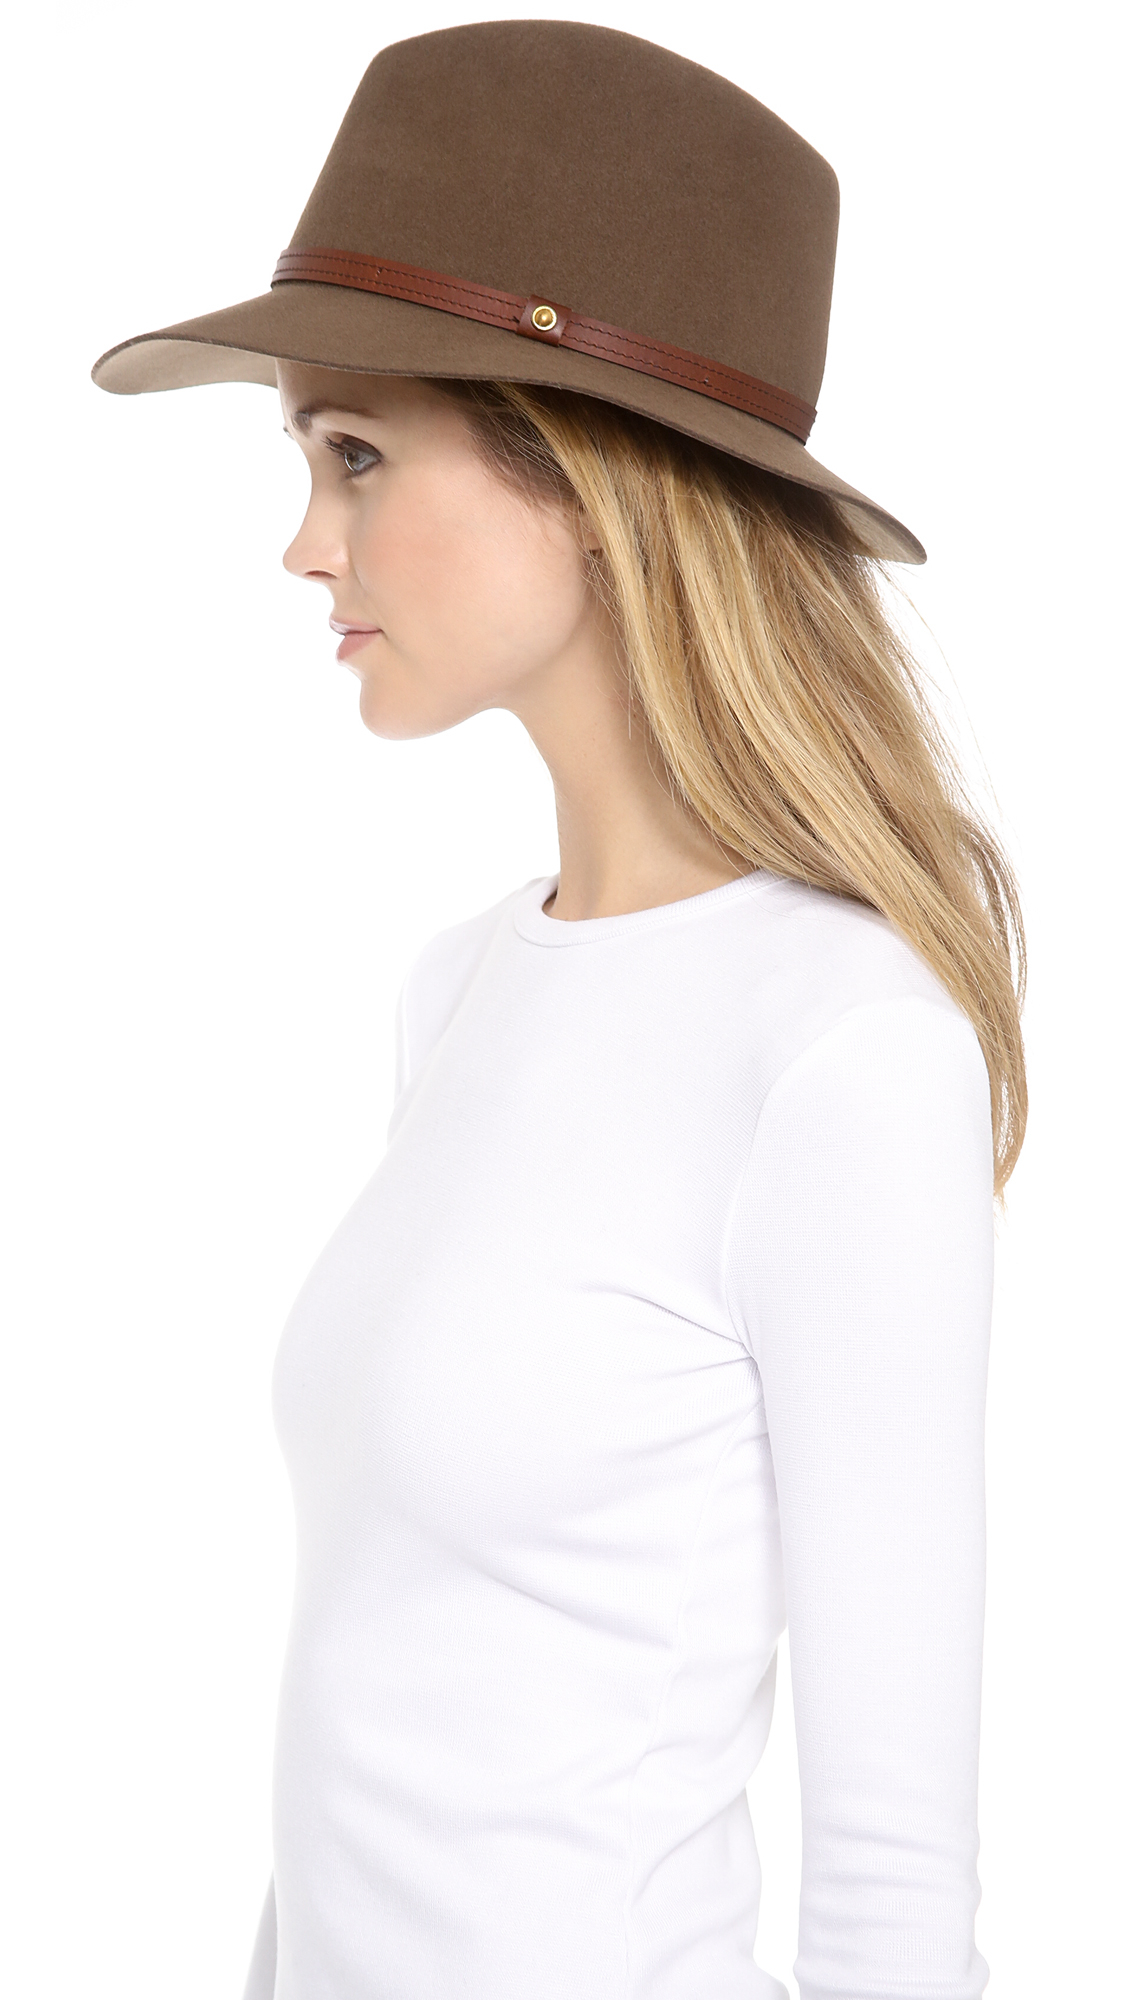 Lyst - Rag   Bone Floppy Brim Fedora in Brown 9a539321972